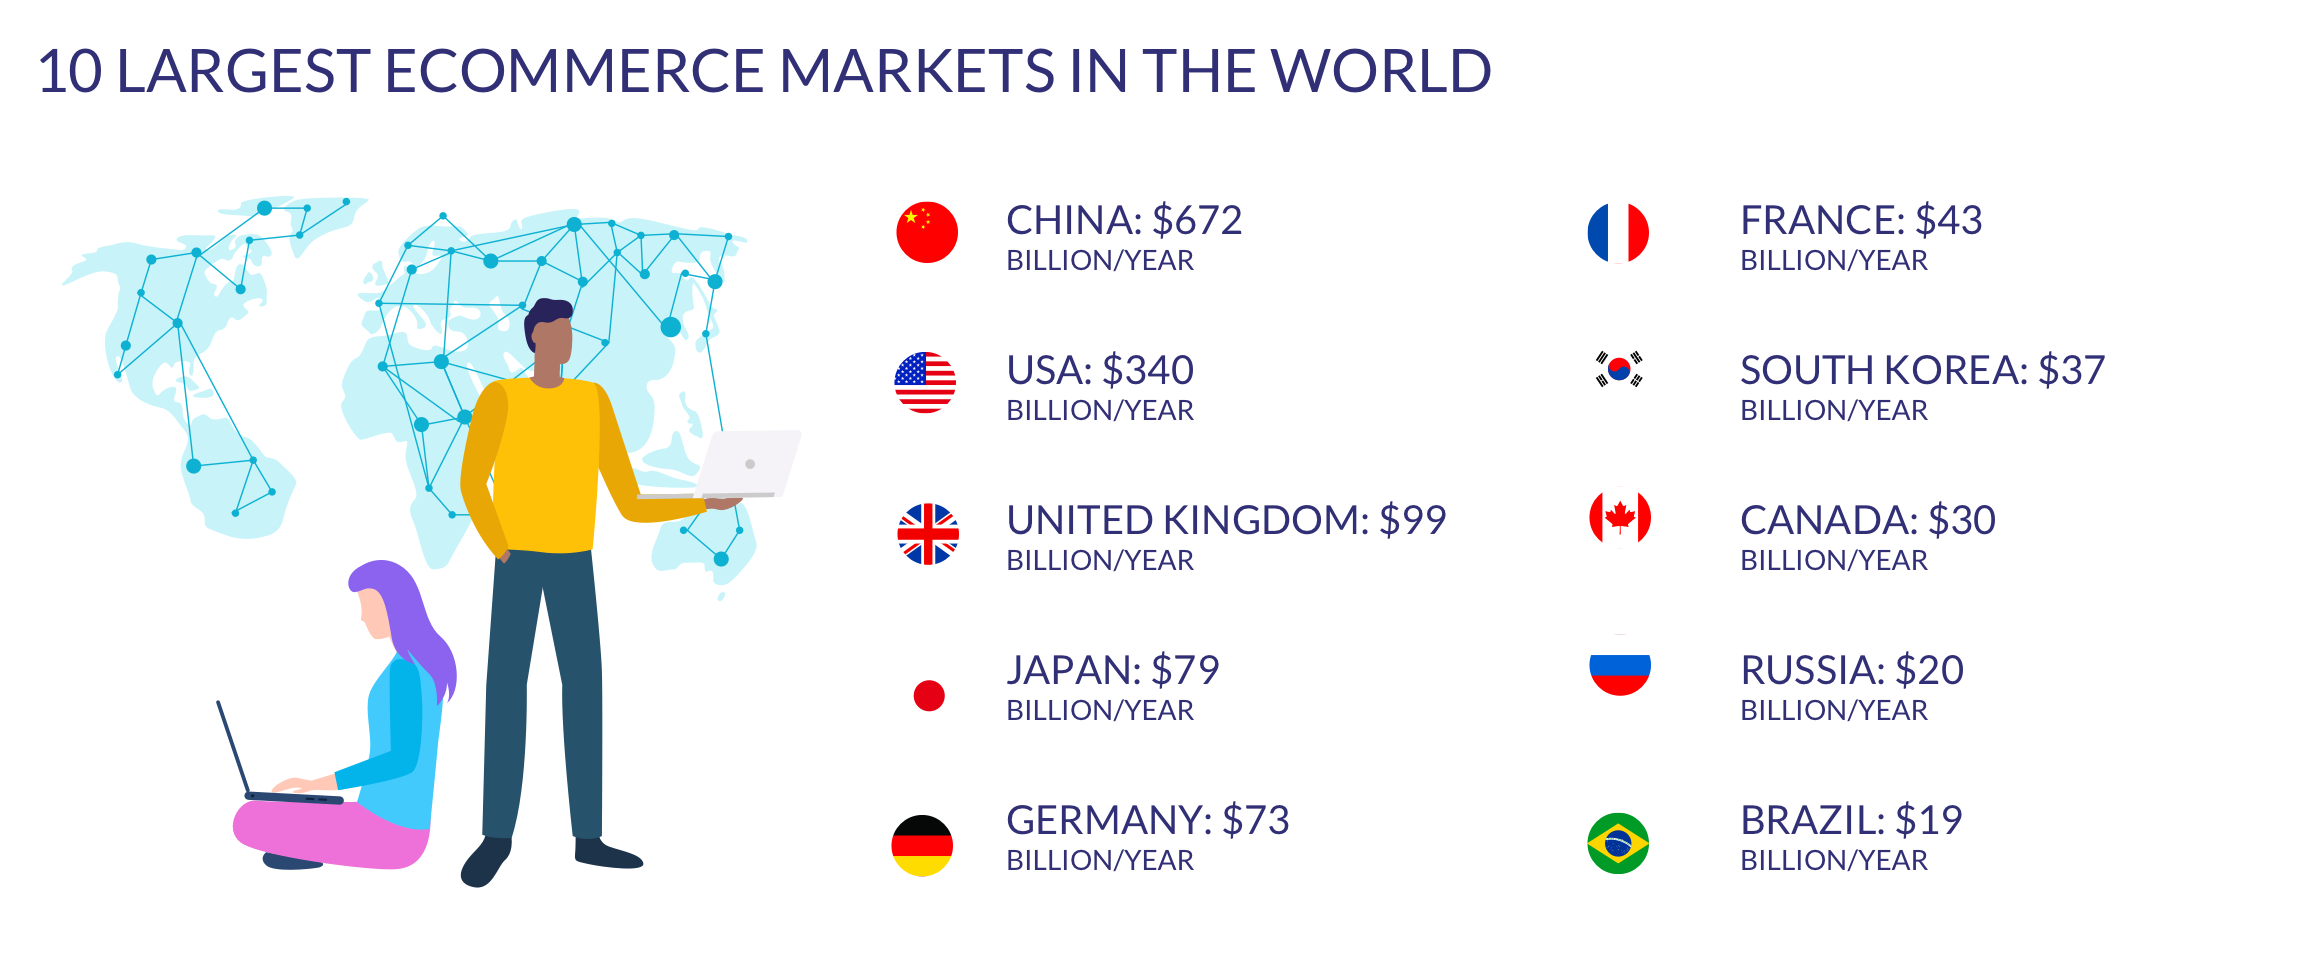 the 10 largest ecommerce markets in the world